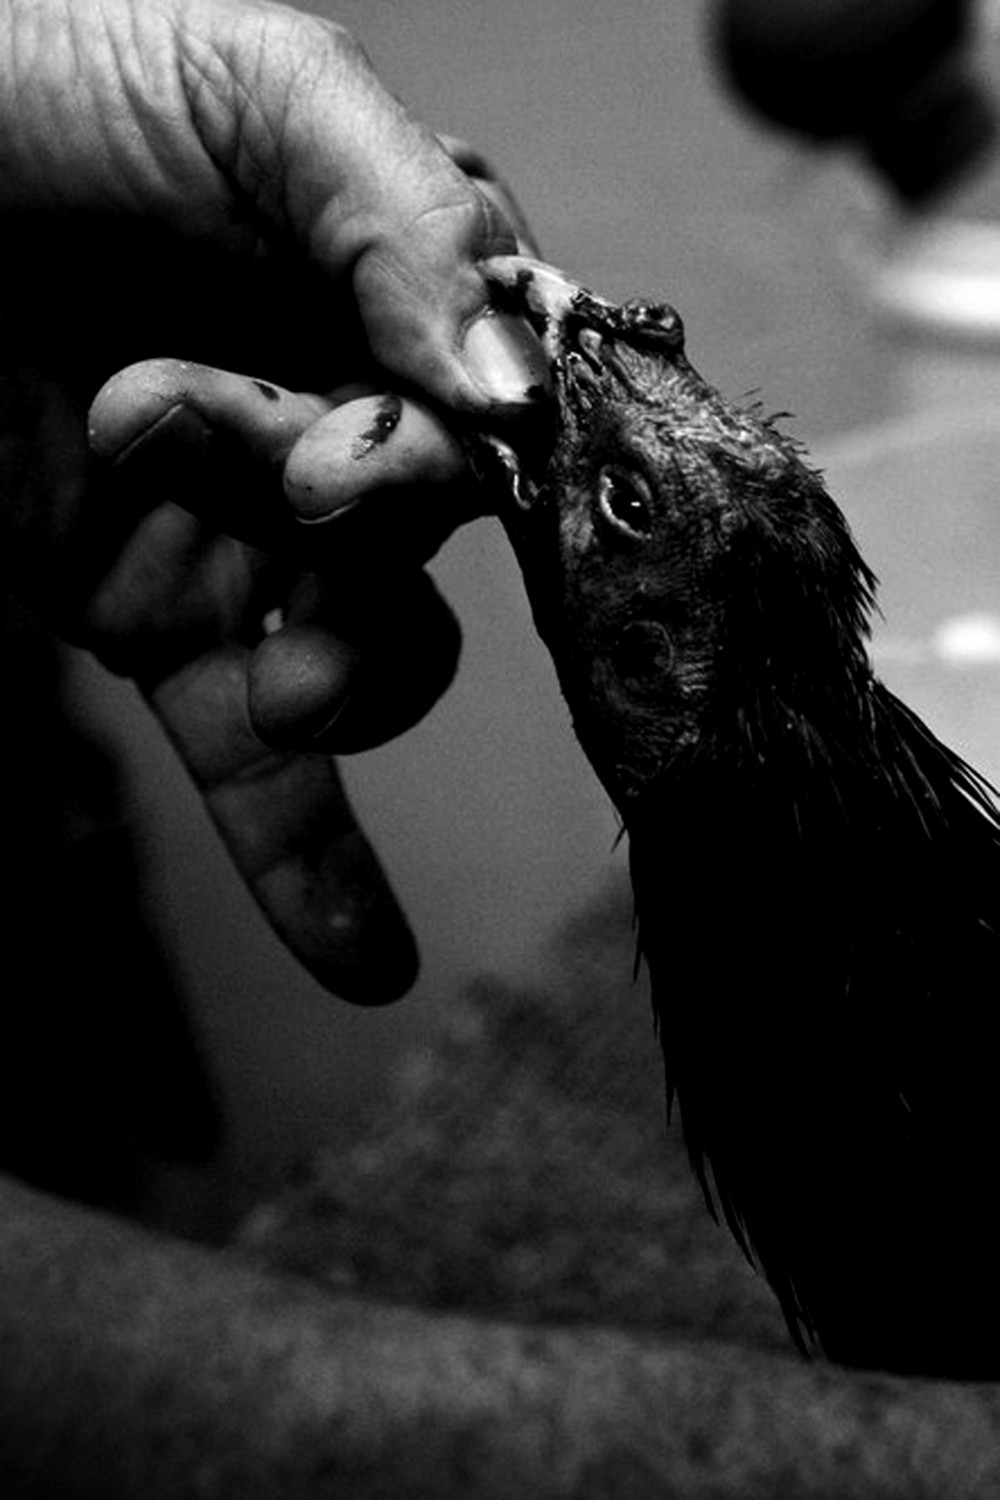 A worker examines a bird shortly after its fight. Some birds are able to fight again, if not then they can be used for breeding. If a bird's wounds are too serious then they are left for dead, winner or not.